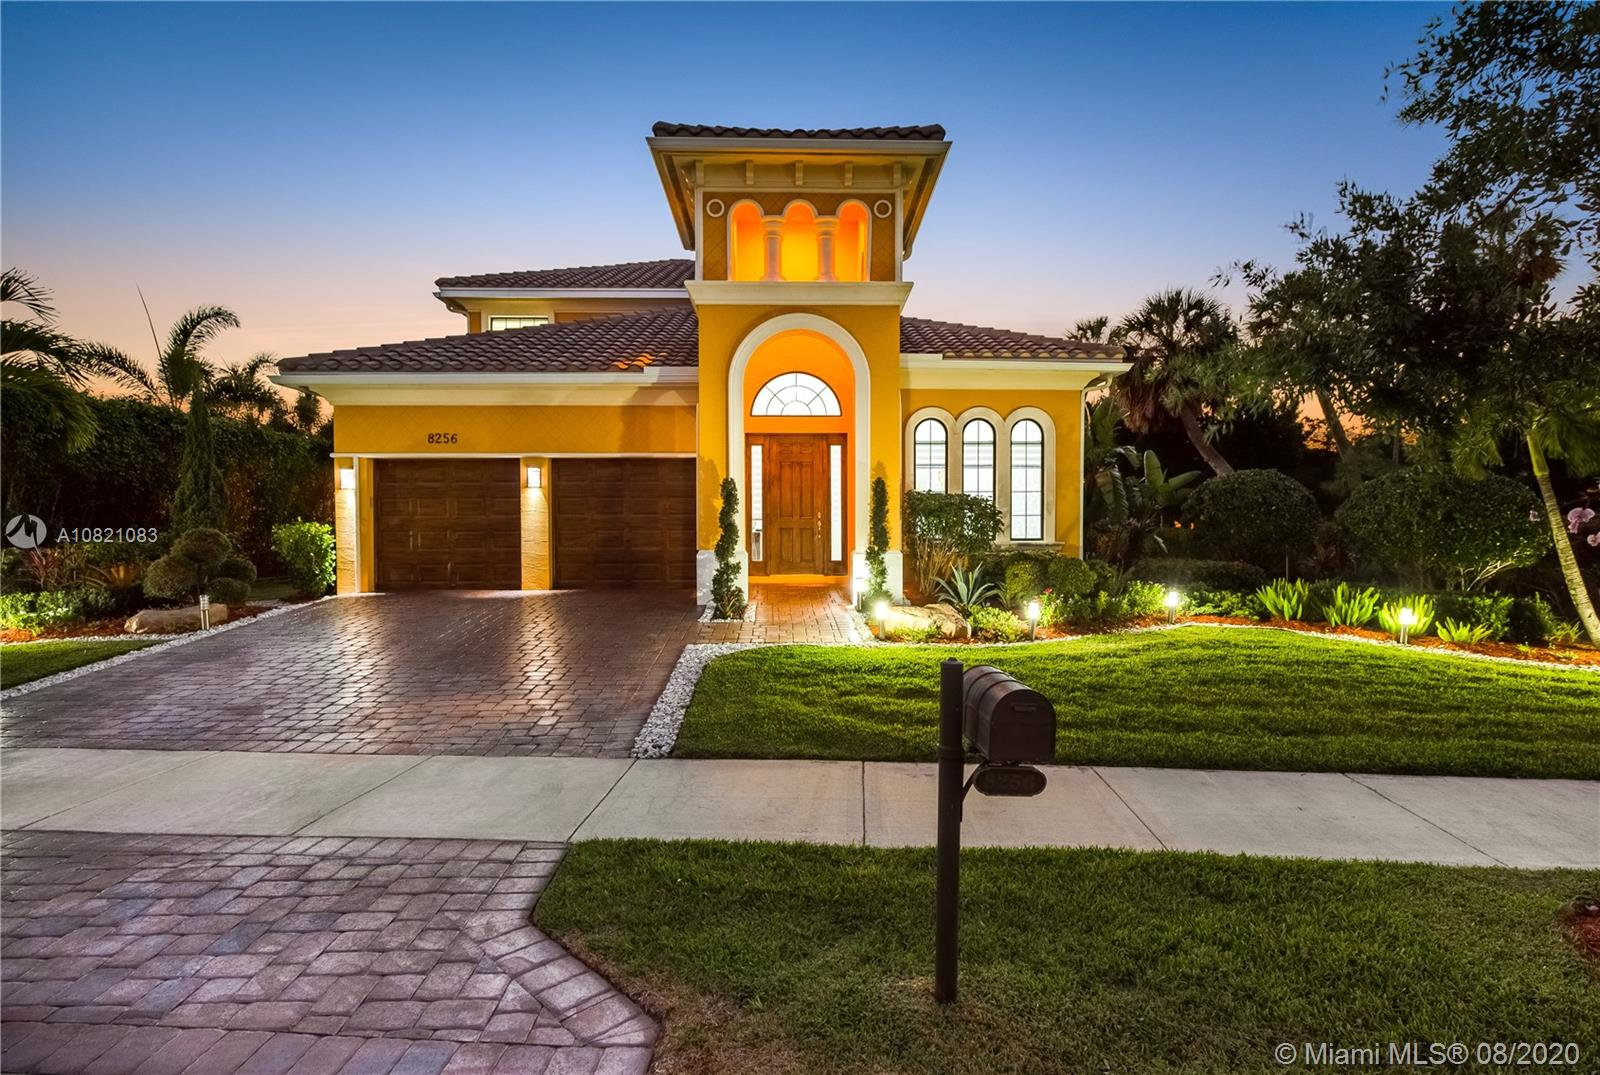 Welcome home to Parkland Golf and Country Club's waterfront paradise with modern-design touches and sophisticated luxury, all nestled on a private lot surrounded by lush landscaping and outstanding views to the lake.   Enjoy dazzling sunsets, and sunrises too!    You will love the attention to detail this spacious 5 bed+loft/3 bath residence with a 3-car garage offers.     Numerous features throughout: Tropical pool area, elegant light fixtures, contemporary staircase and 3D wall panels, spacious loft, upgraded LED lighting inside and outside, custom closets, upstairs laundry, and much more!  One of the bedrooms downstairs is used as an office.    *Experience unmatched lifestyle, fun and exciting activities at the 43,000-square-foot Sports Club*    Call for a private tour today!